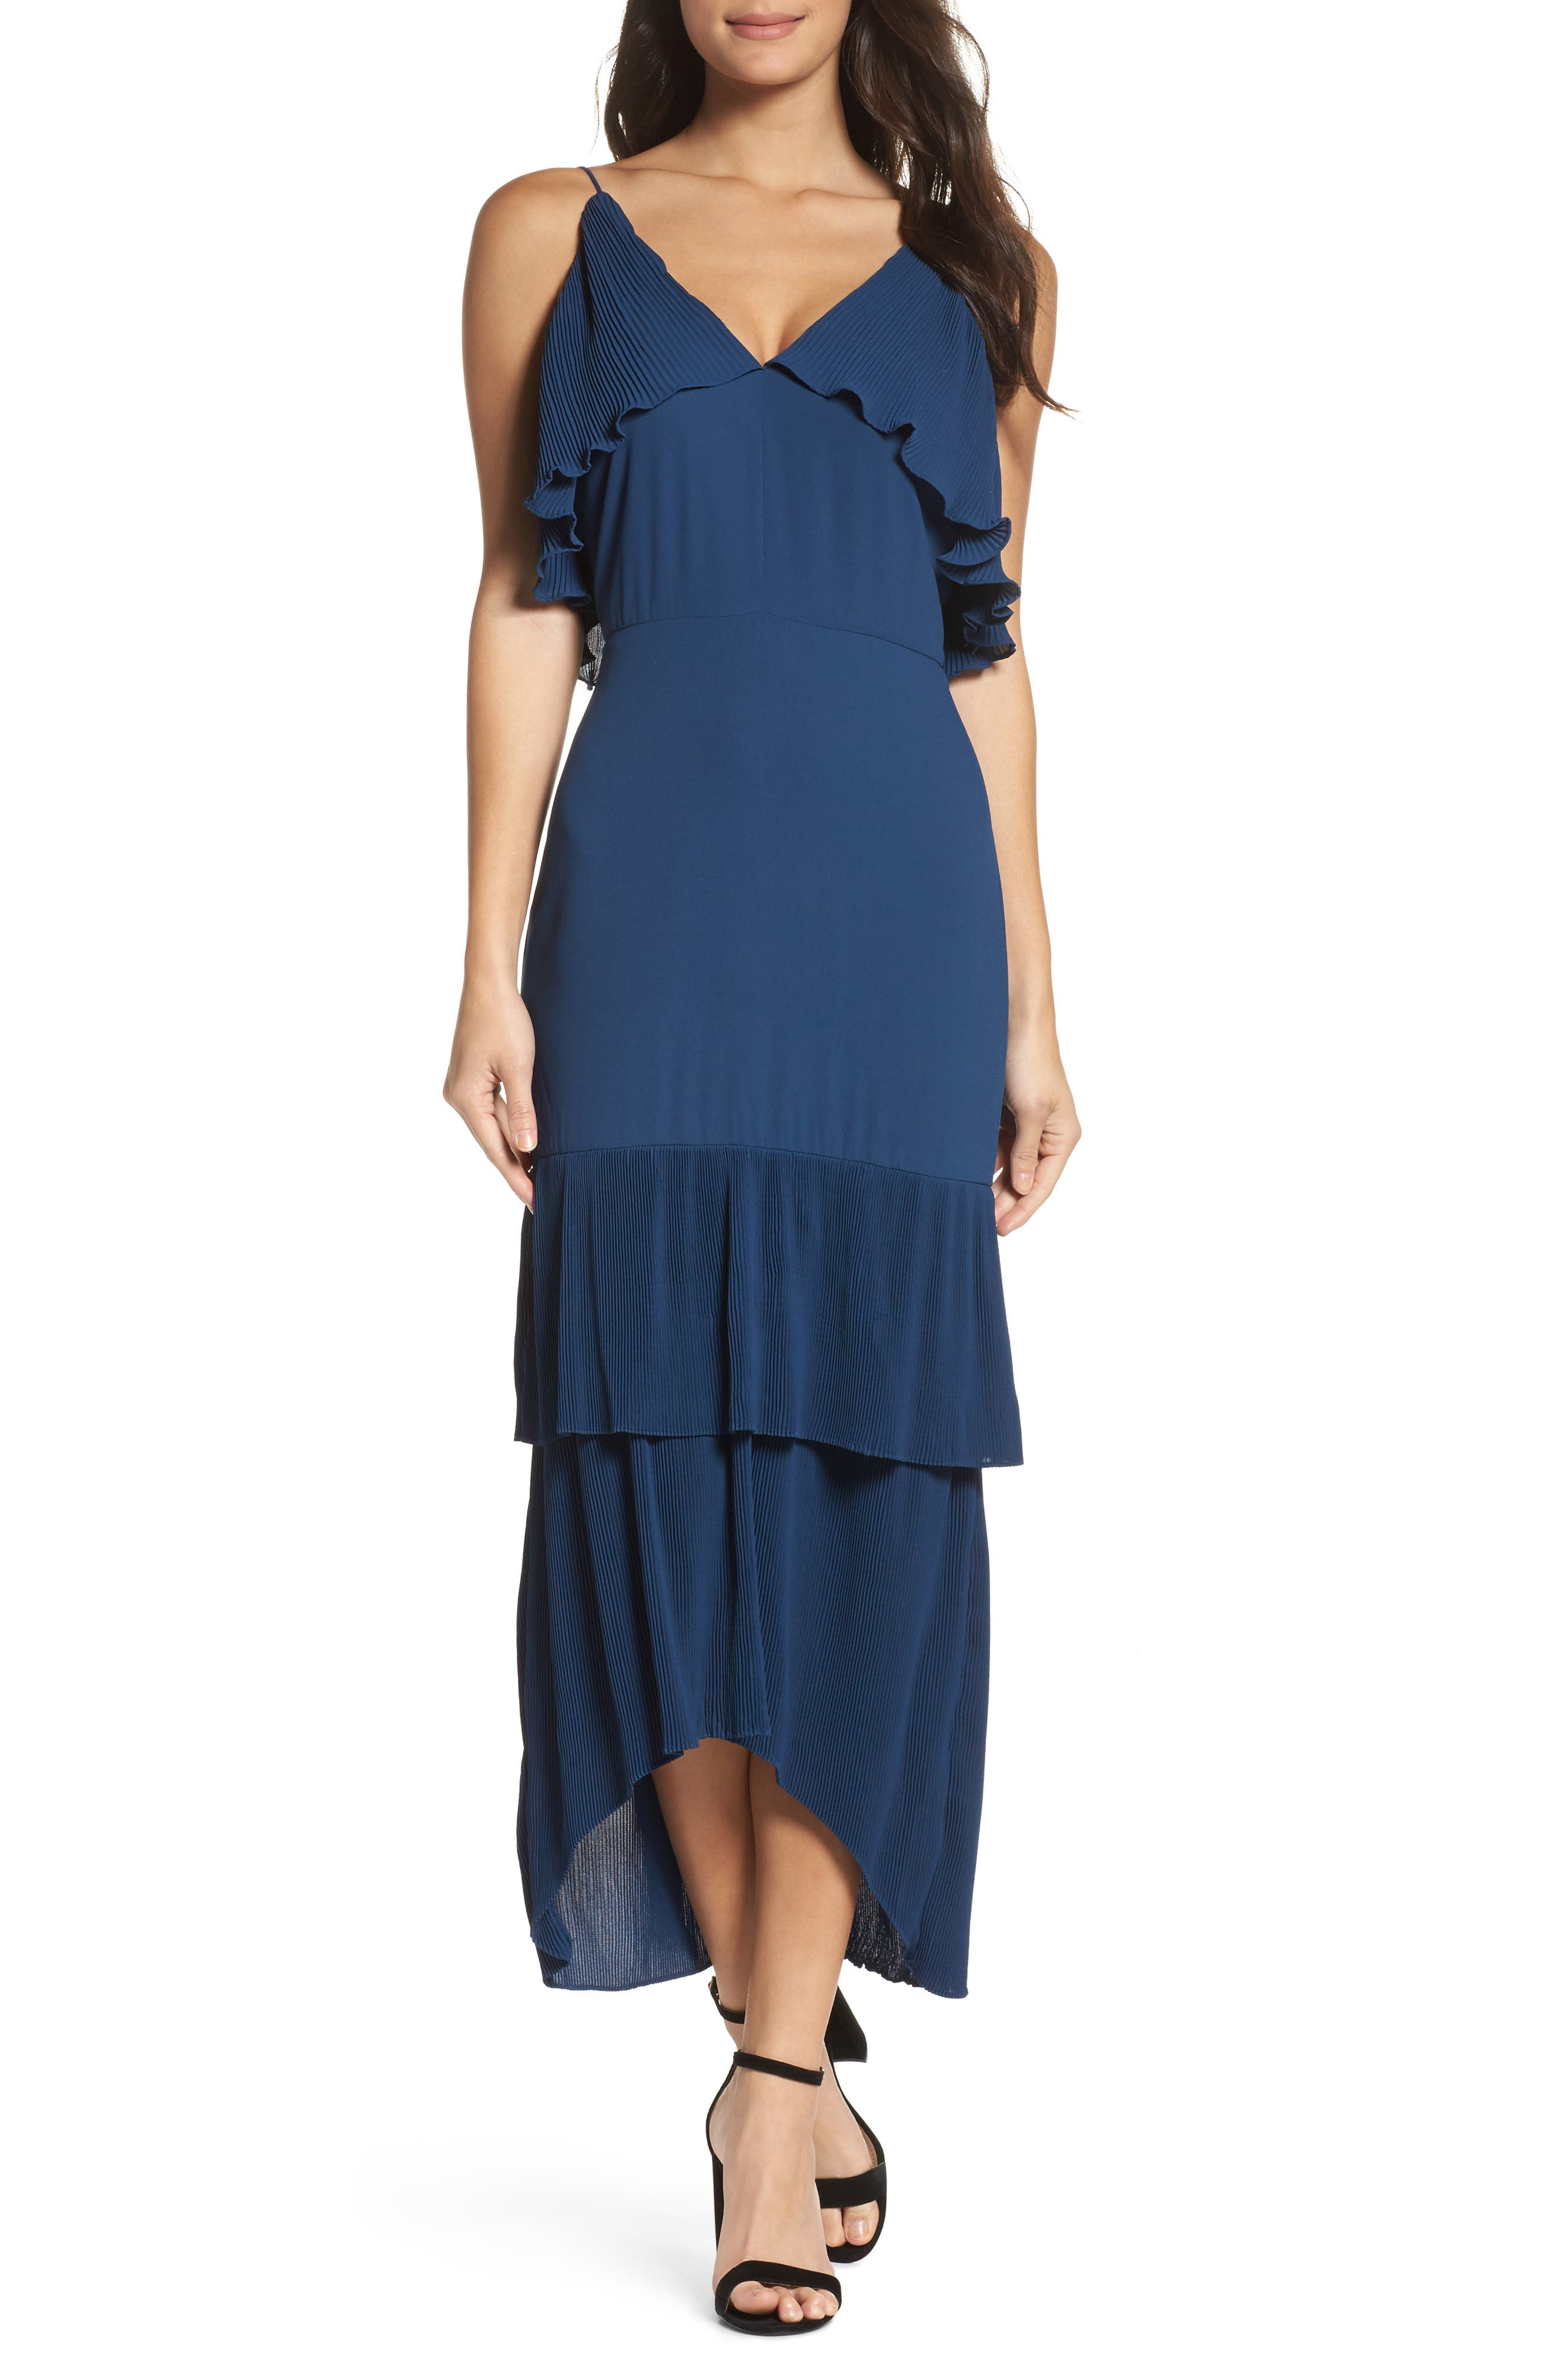 Kate Pleated Ruffle Midi Dress,                         Main,                         color, 415